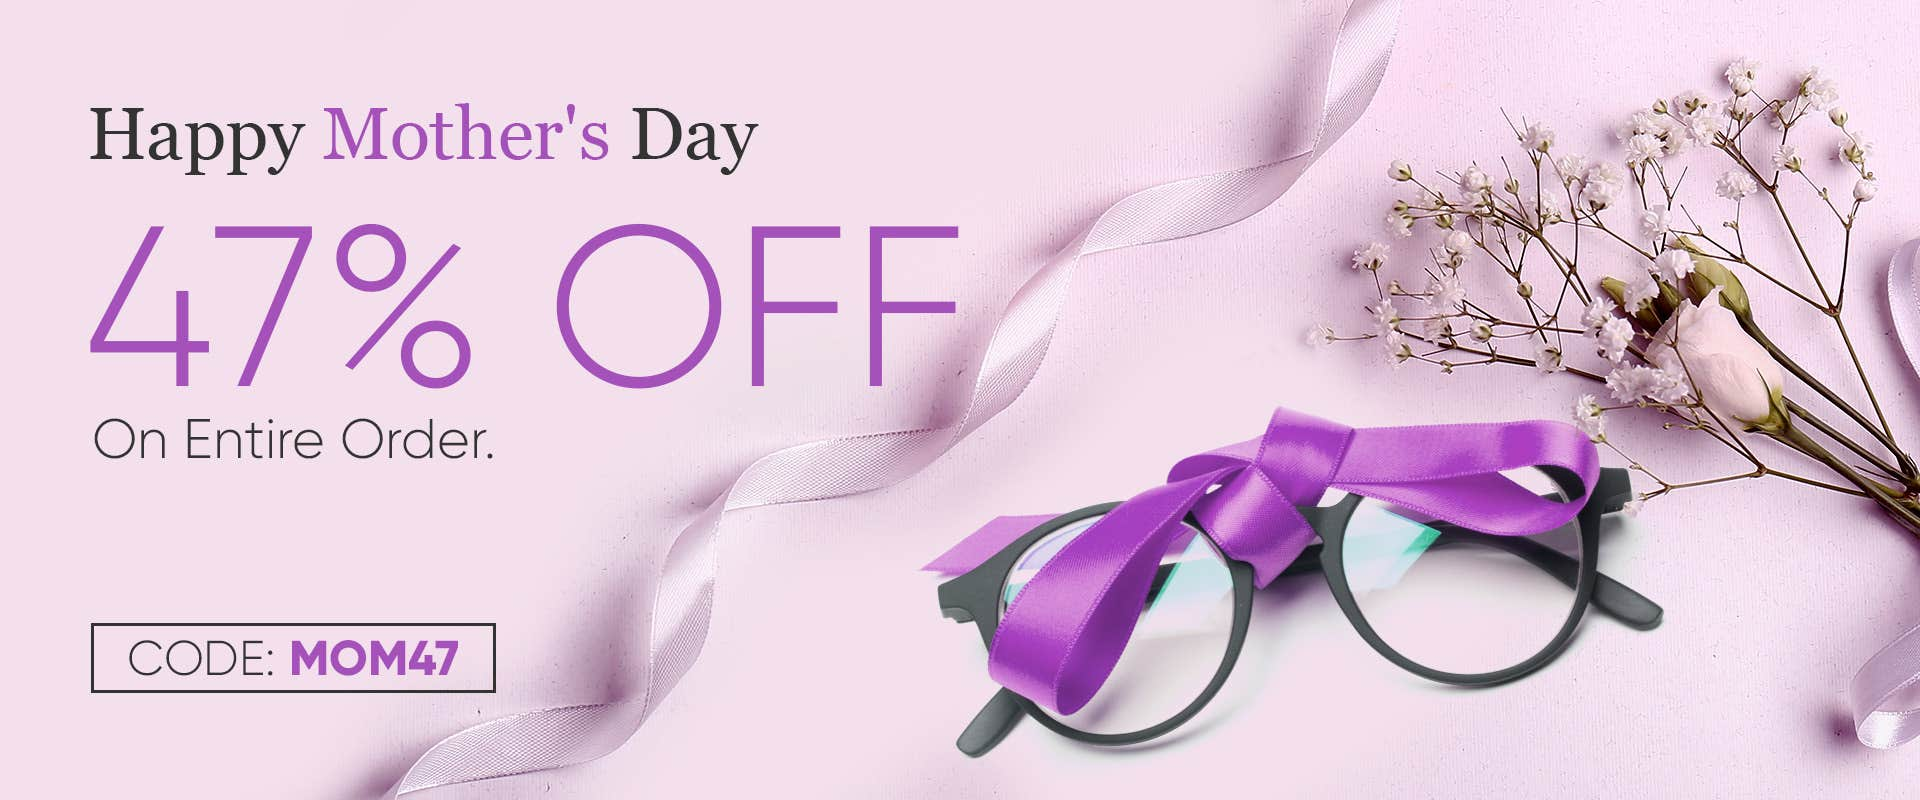 Mother's Day Sale 47% OFF On Entire Order, CODE:  MOM47